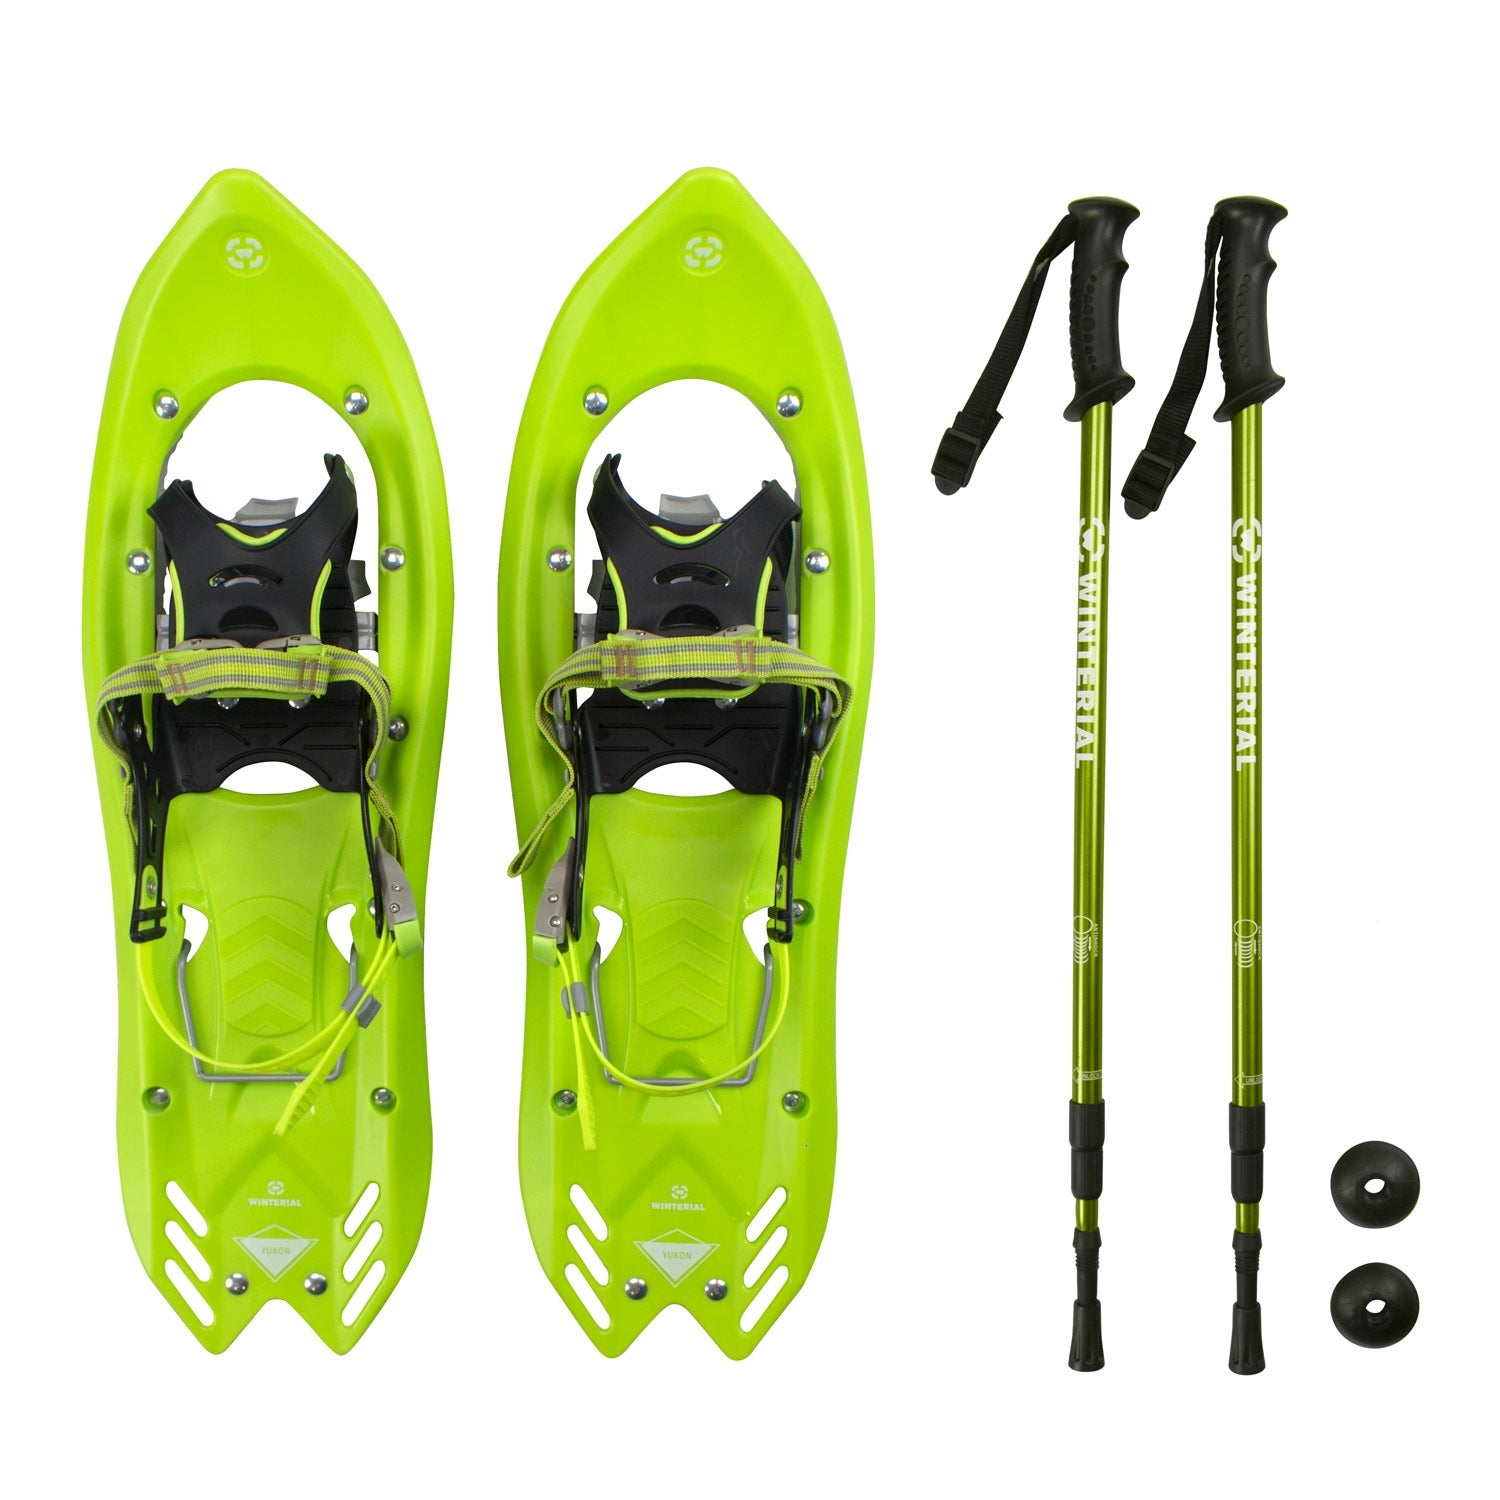 80bcc9146de6 Shop Winterial Yukon Snowshoes 25 Inch Lightweight All Terrain Green Snow  Shoes with Carry Bag and Adjustable Poles - Free Shipping Today - Overstock  - ...